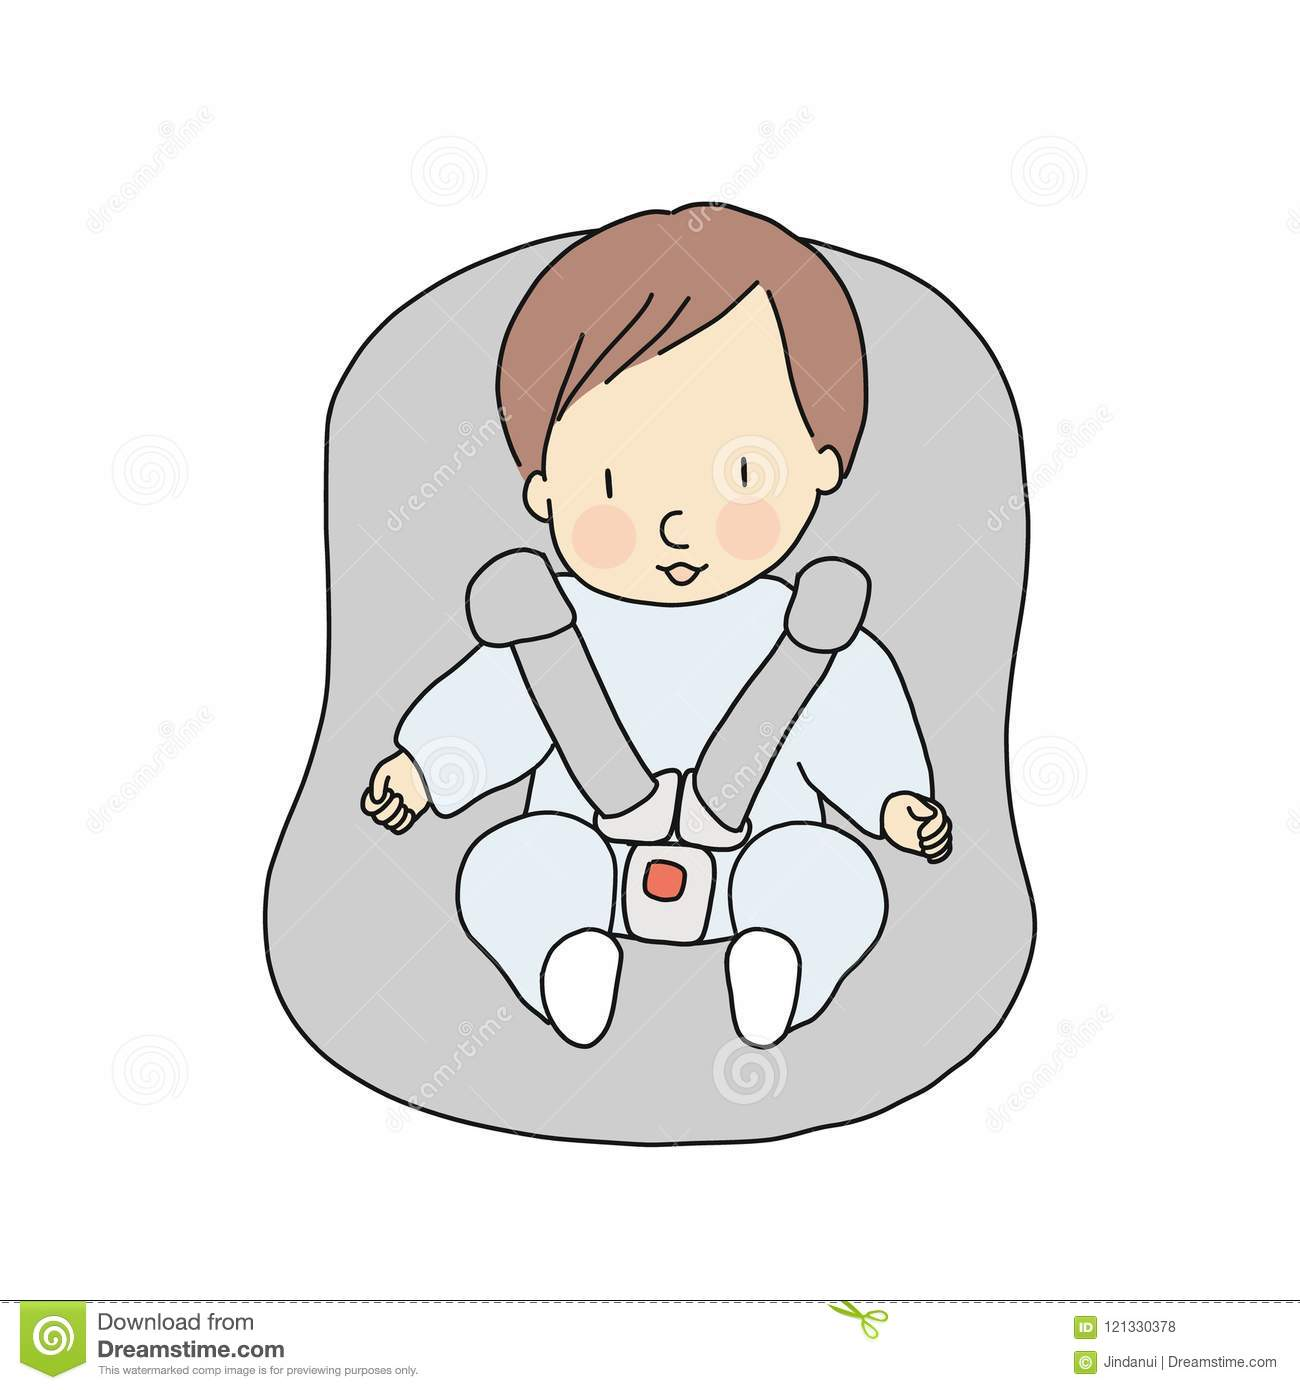 Vector Illustration Of Little Infant Sitting In Car Seat Baby Safety Concept Cartoon Character Drawing Style Stock Illustration Illustration Of Character Infant 121330378